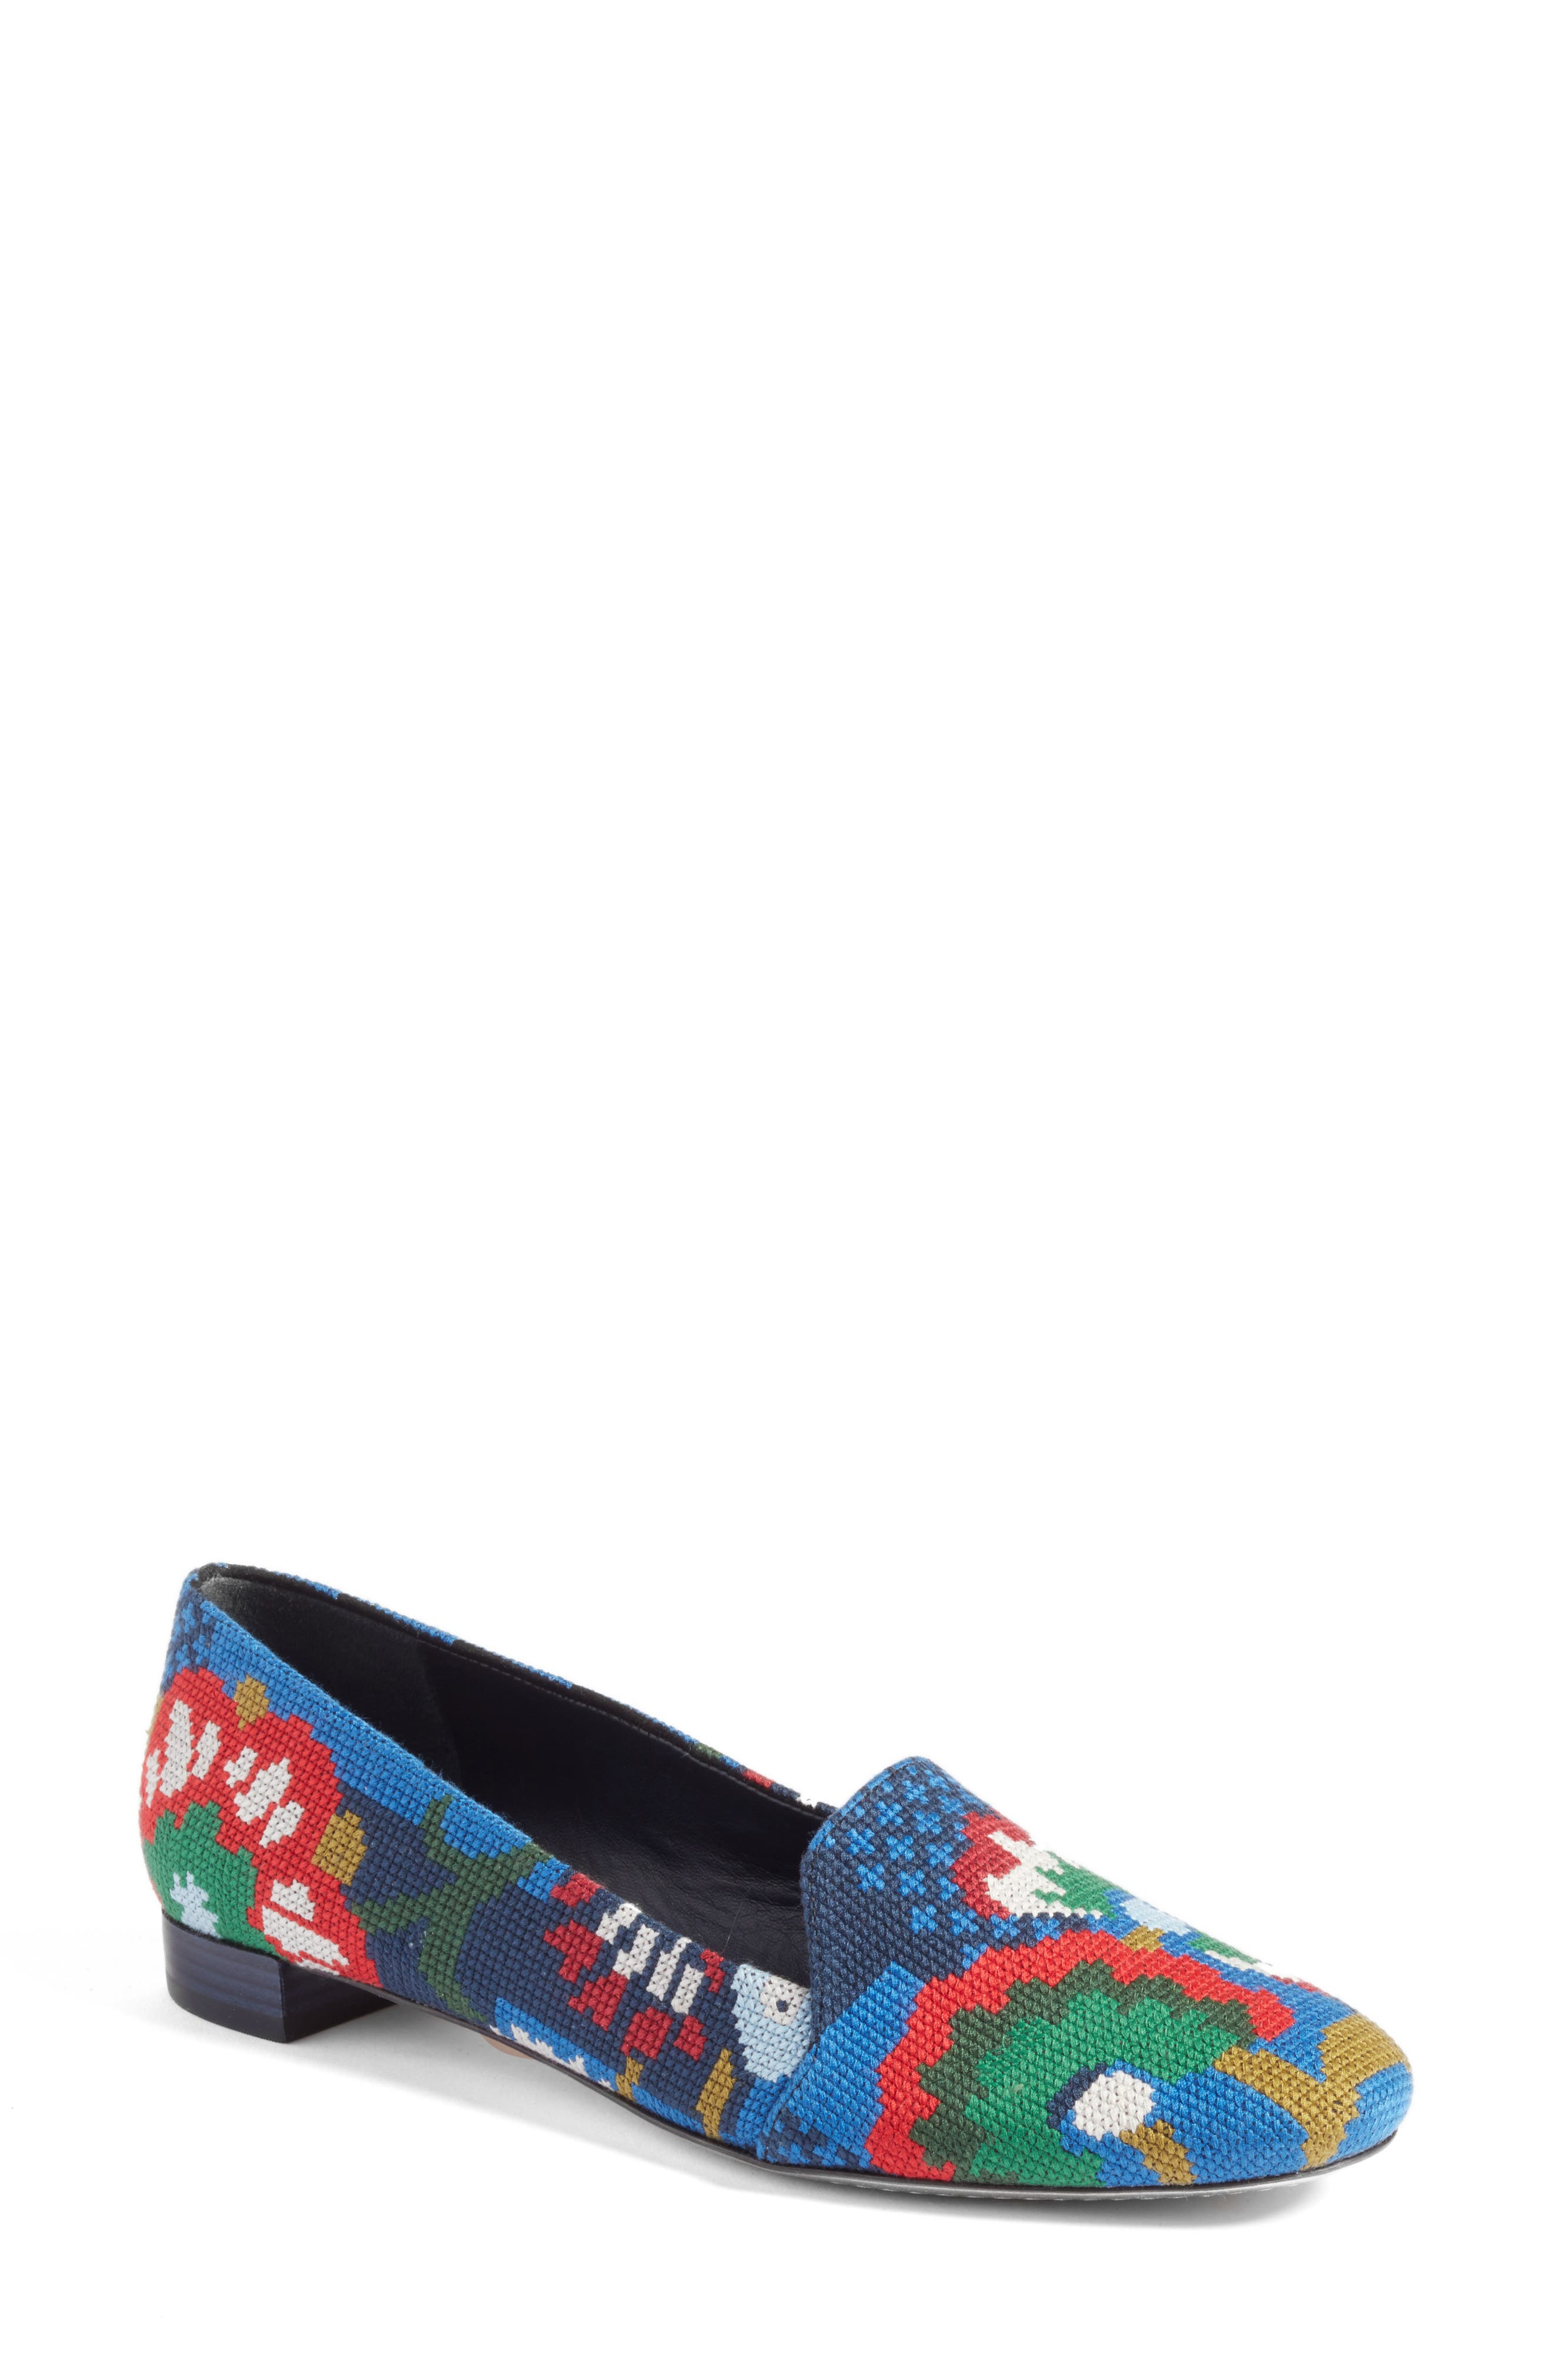 Alternate Image 1 Selected - Tory Burch Sadie Floral Cross Stitch Loafer (Women)